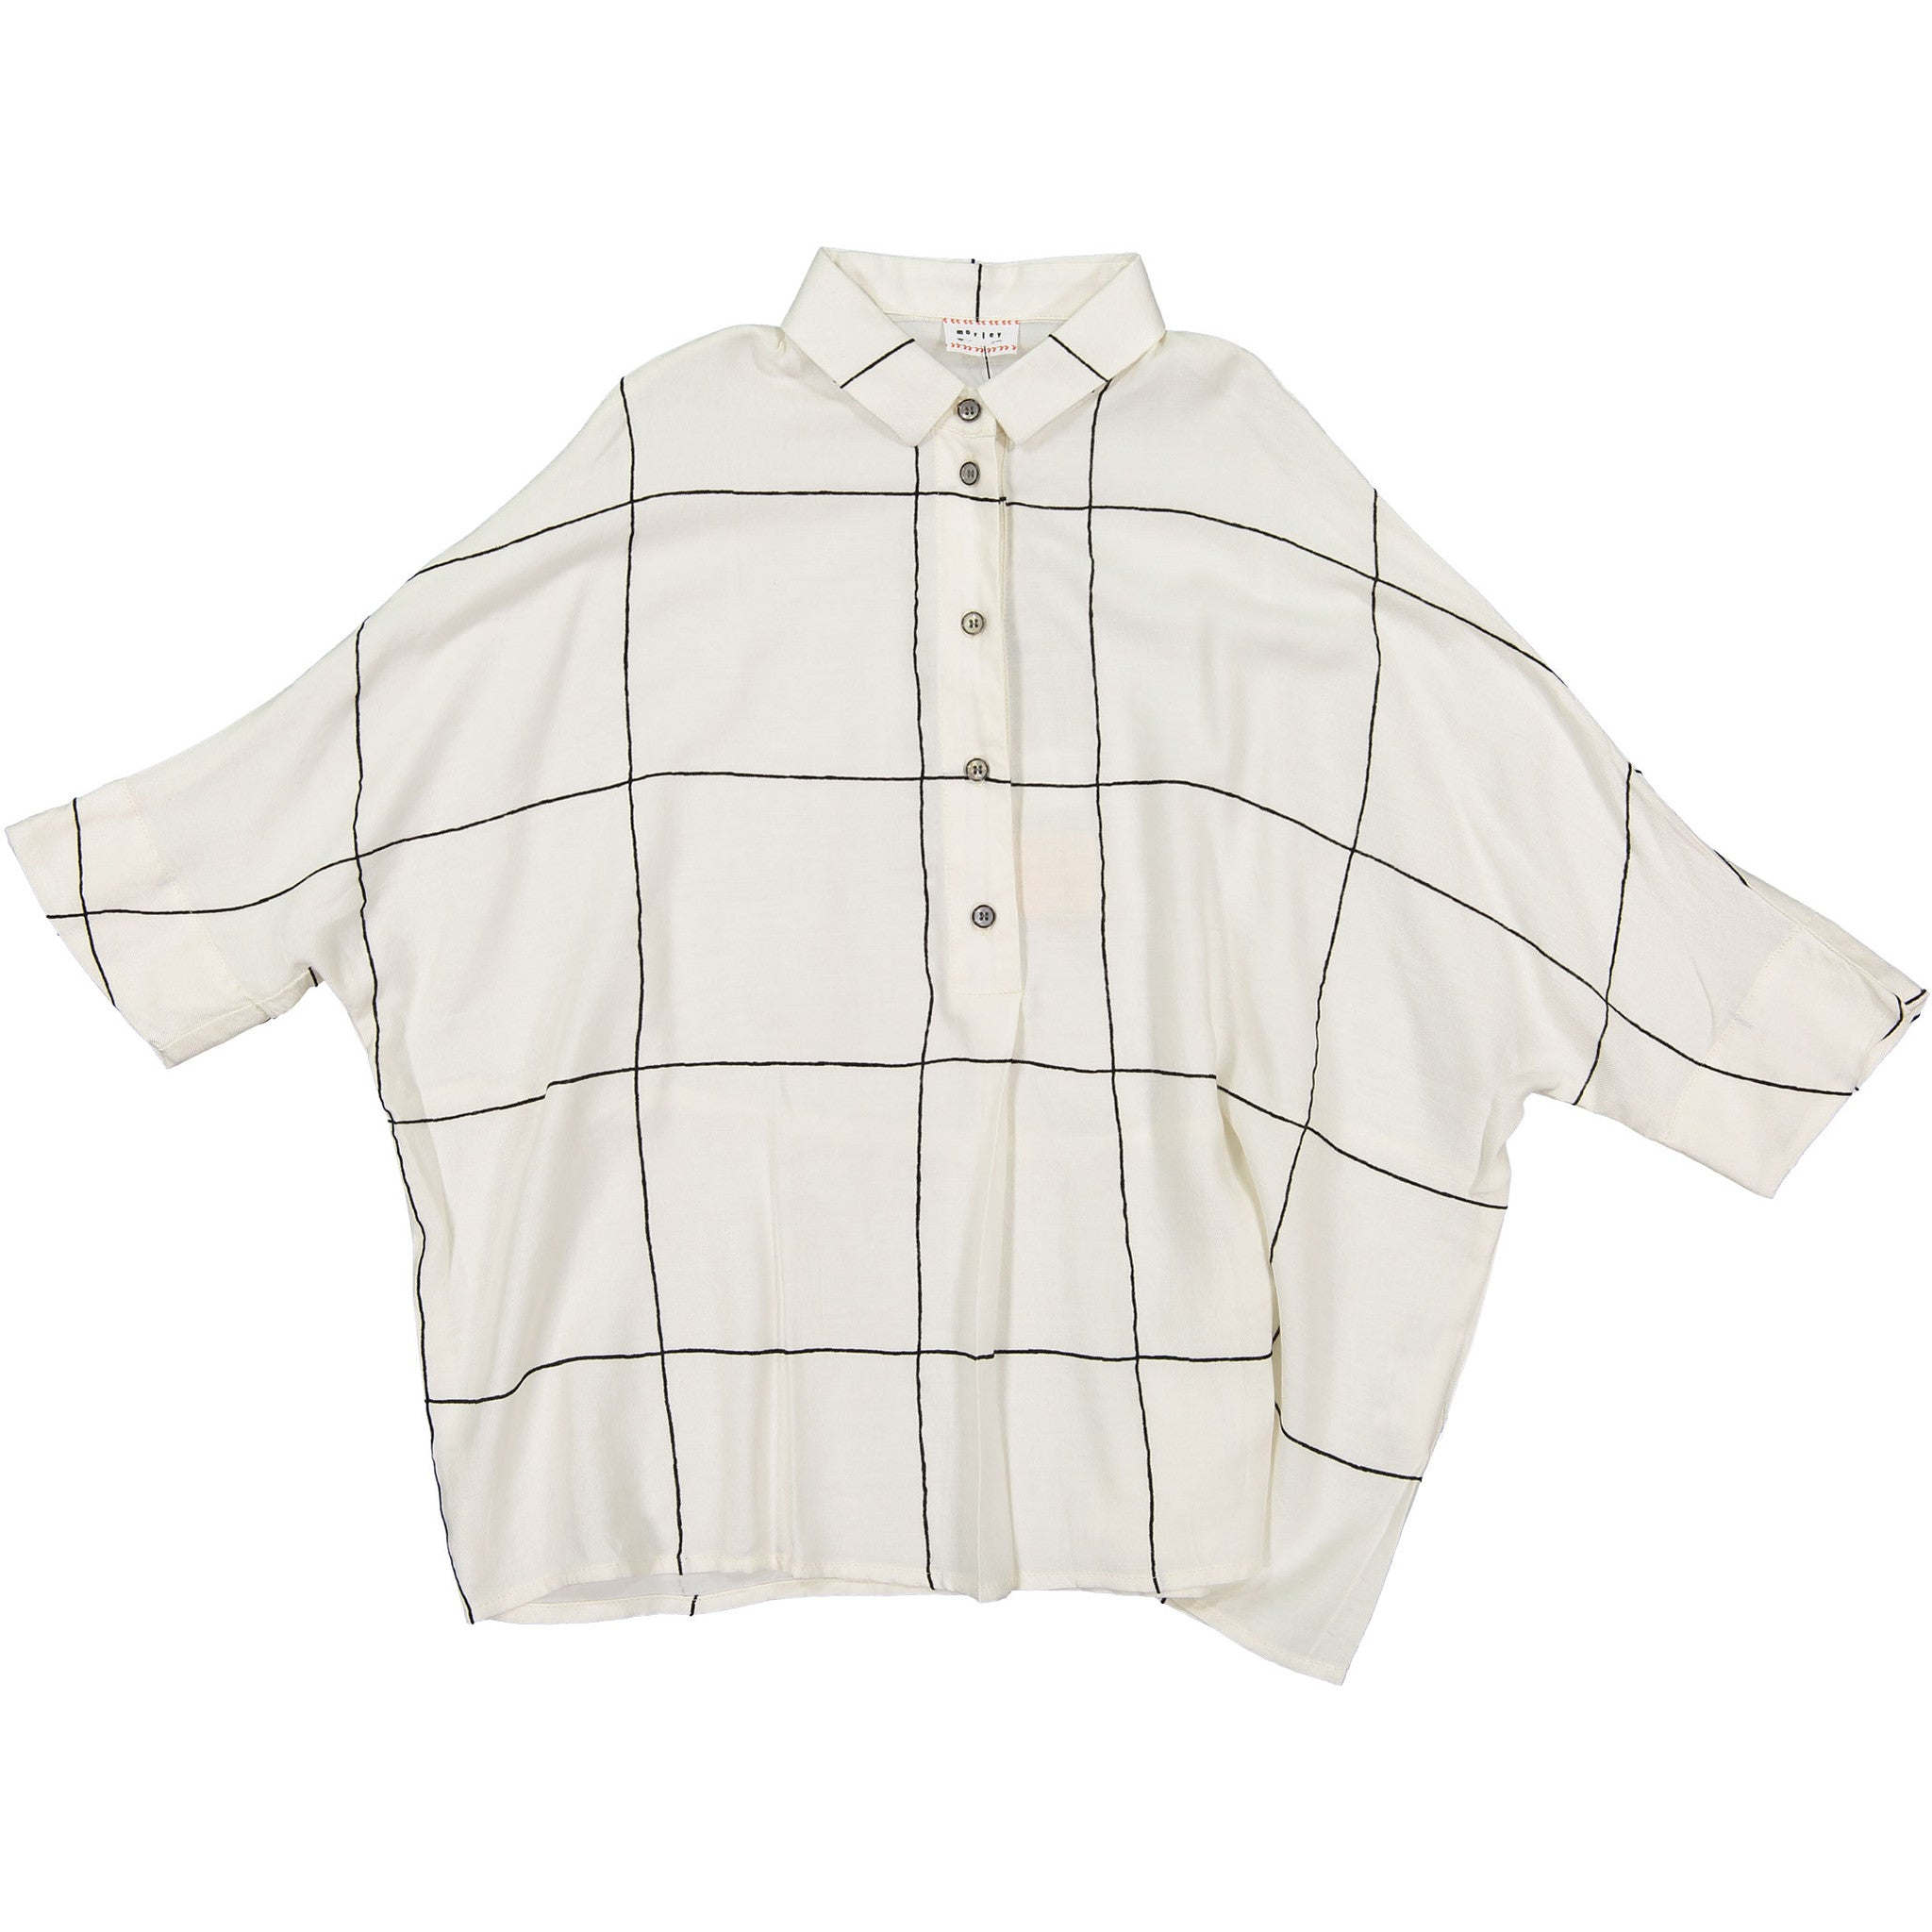 Morley White Check Blouse - Ladida